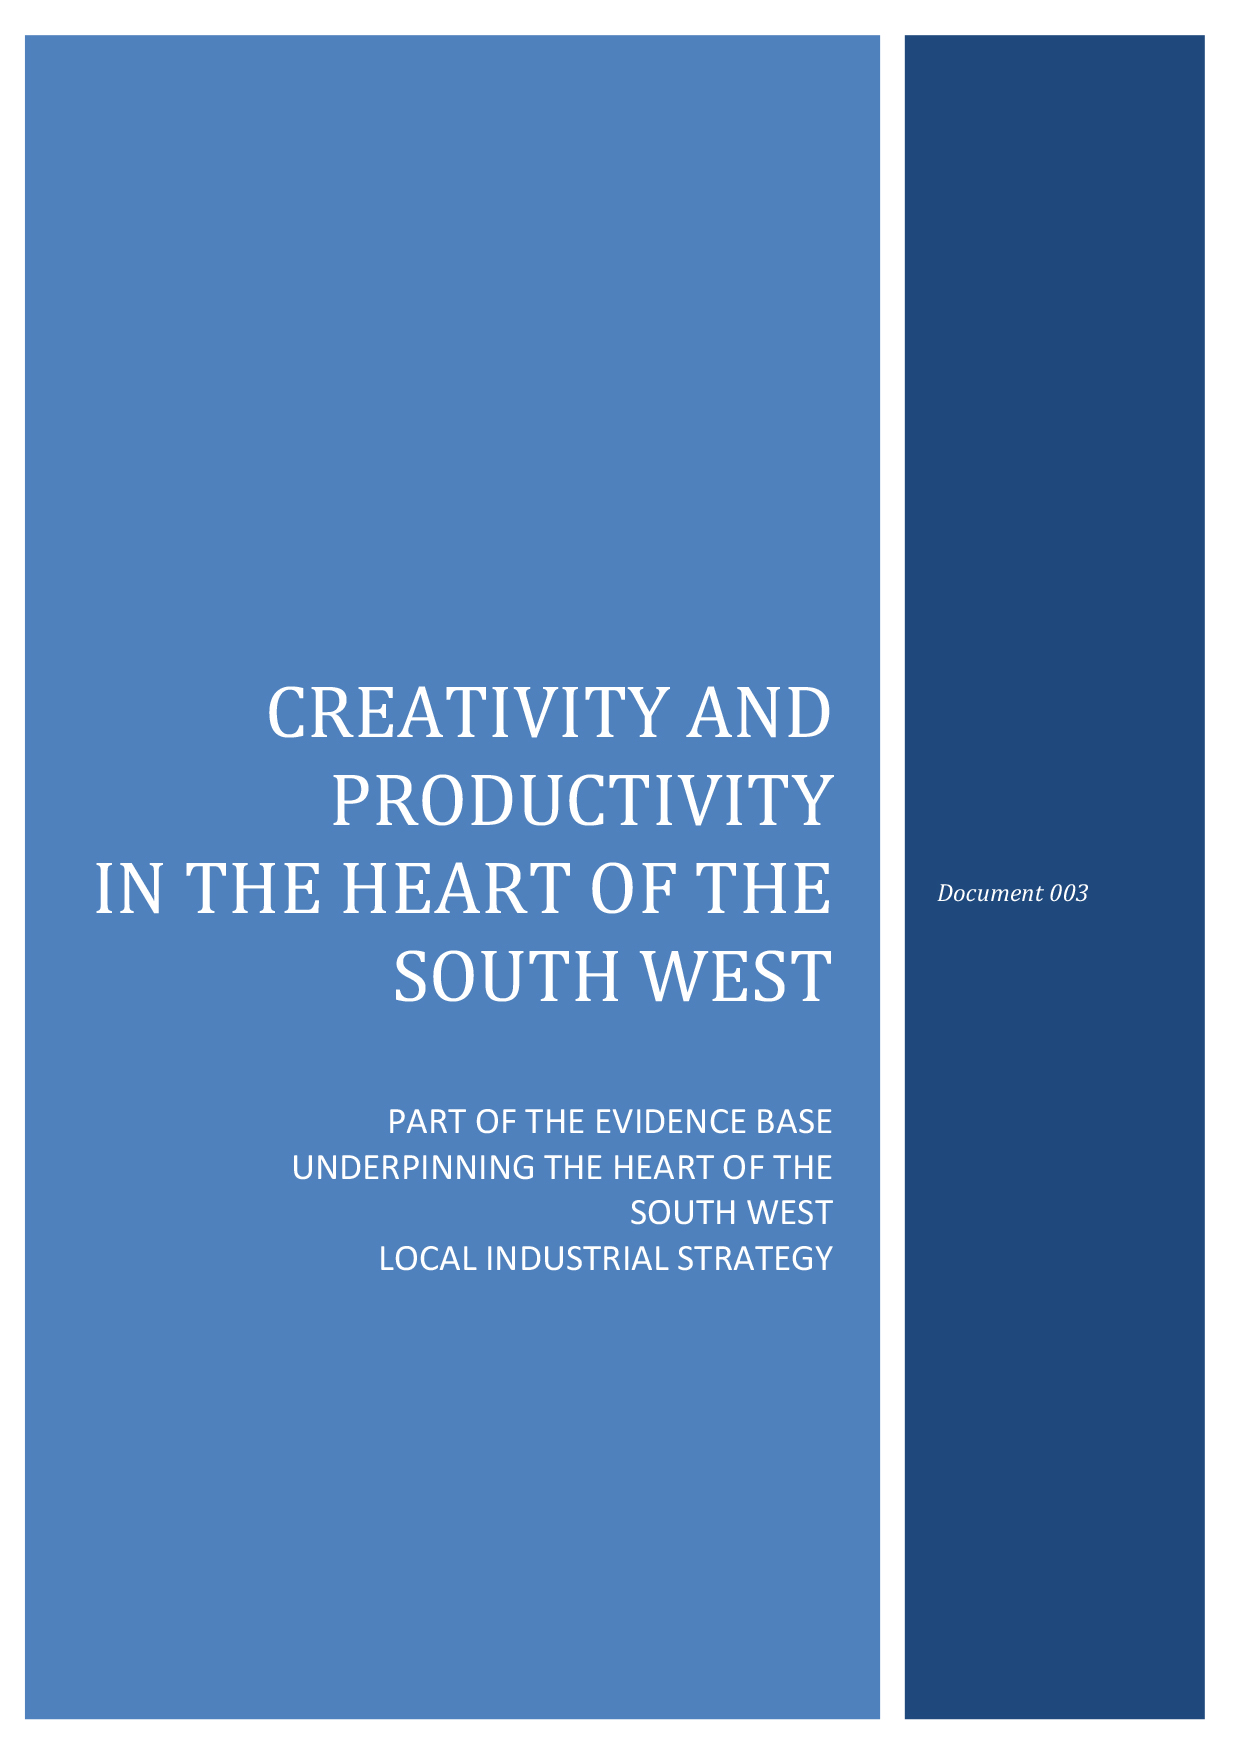 Microsoft Word - 003 Creativity and Productivity in the Heart of